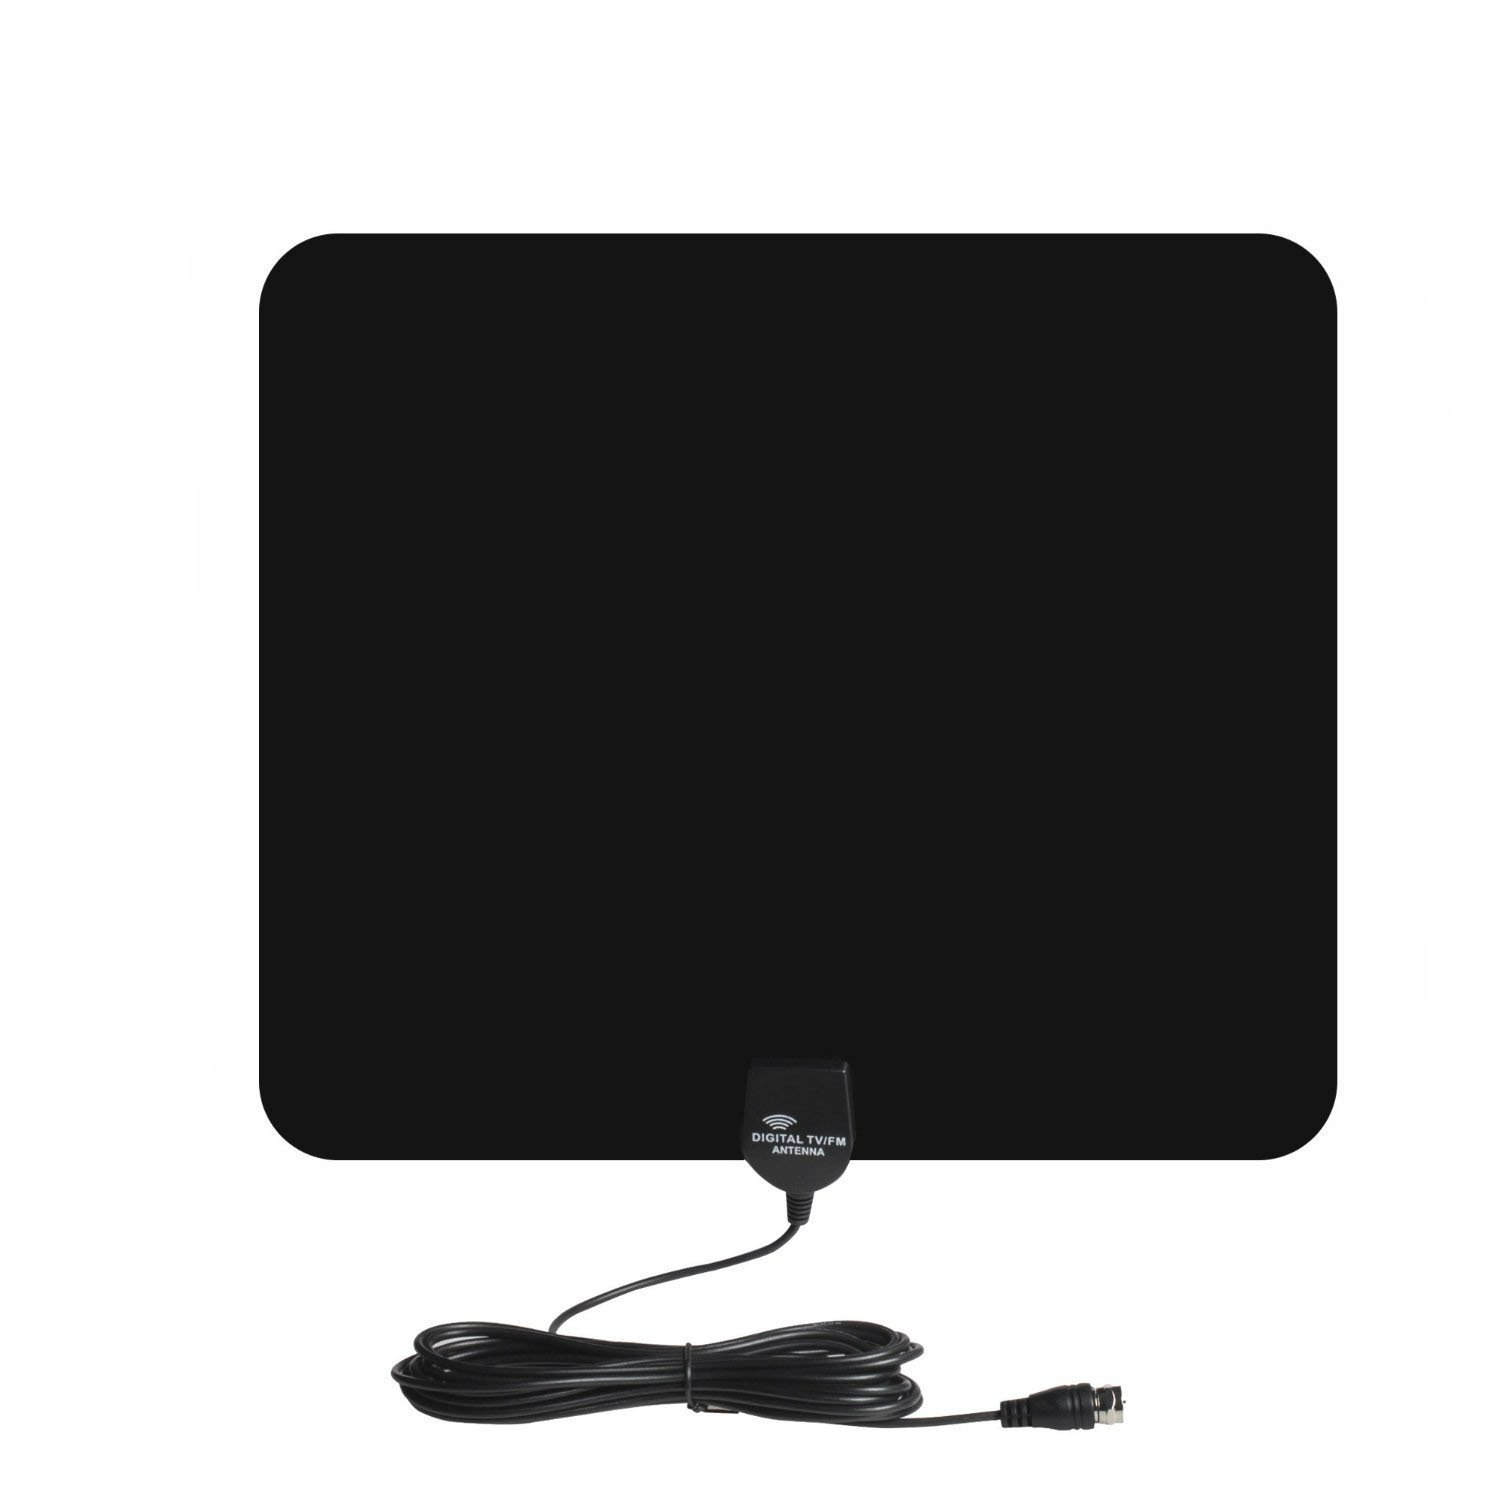 YaphteS 35 Miles Range HDTV Antenna - Super Thin HDTV Indoor Antenna-16.4ft Coax Cable - the Highest Performance and Longest Reception with the Best Price( Black)